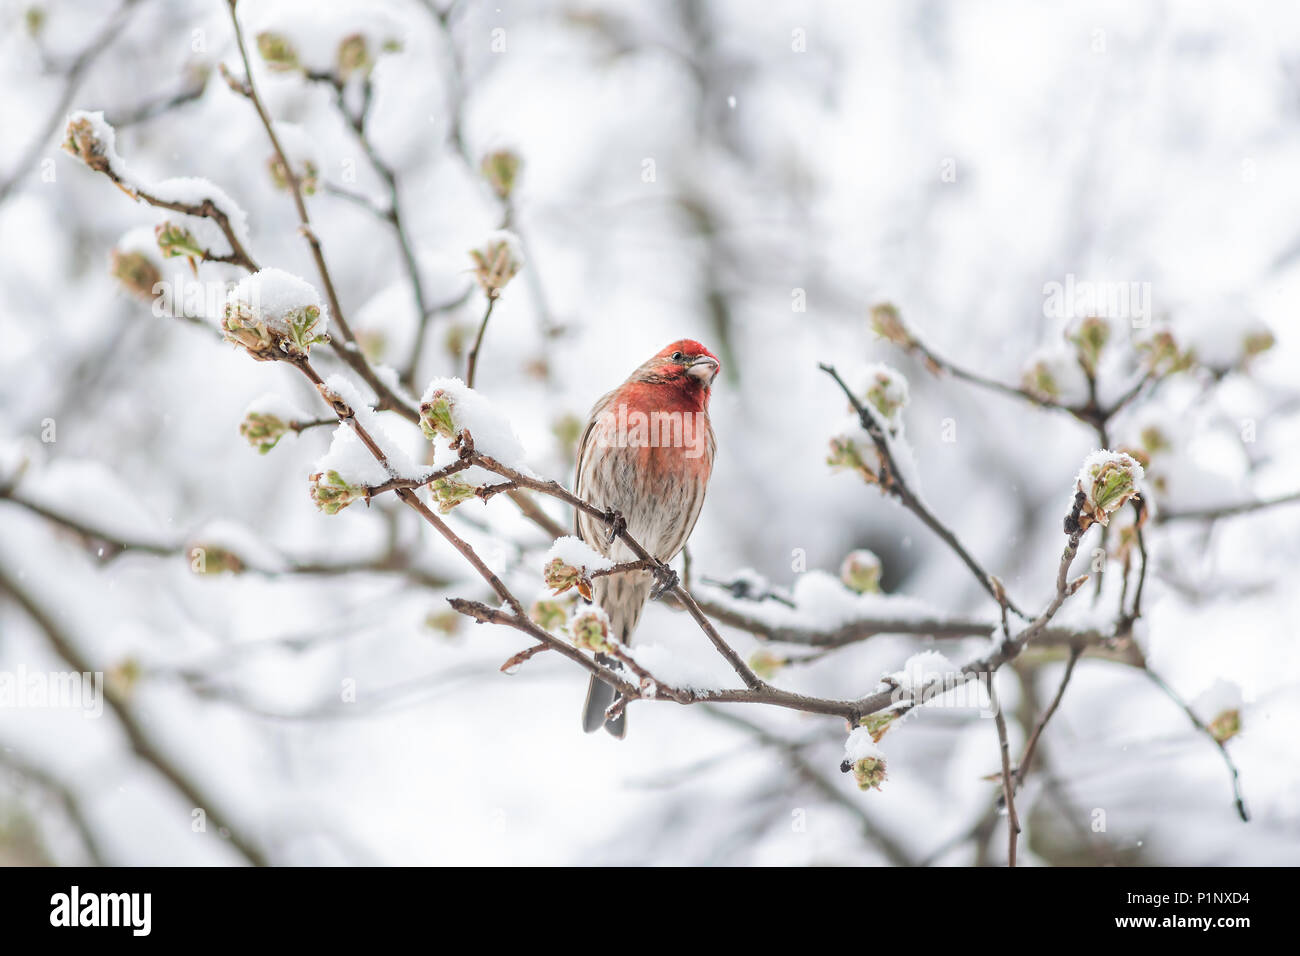 One male red house finch, Haemorhous mexicanus, bird sitting perched on tree branch during heavy winter spring snow colorful in Virginia, snow flakes  - Stock Image